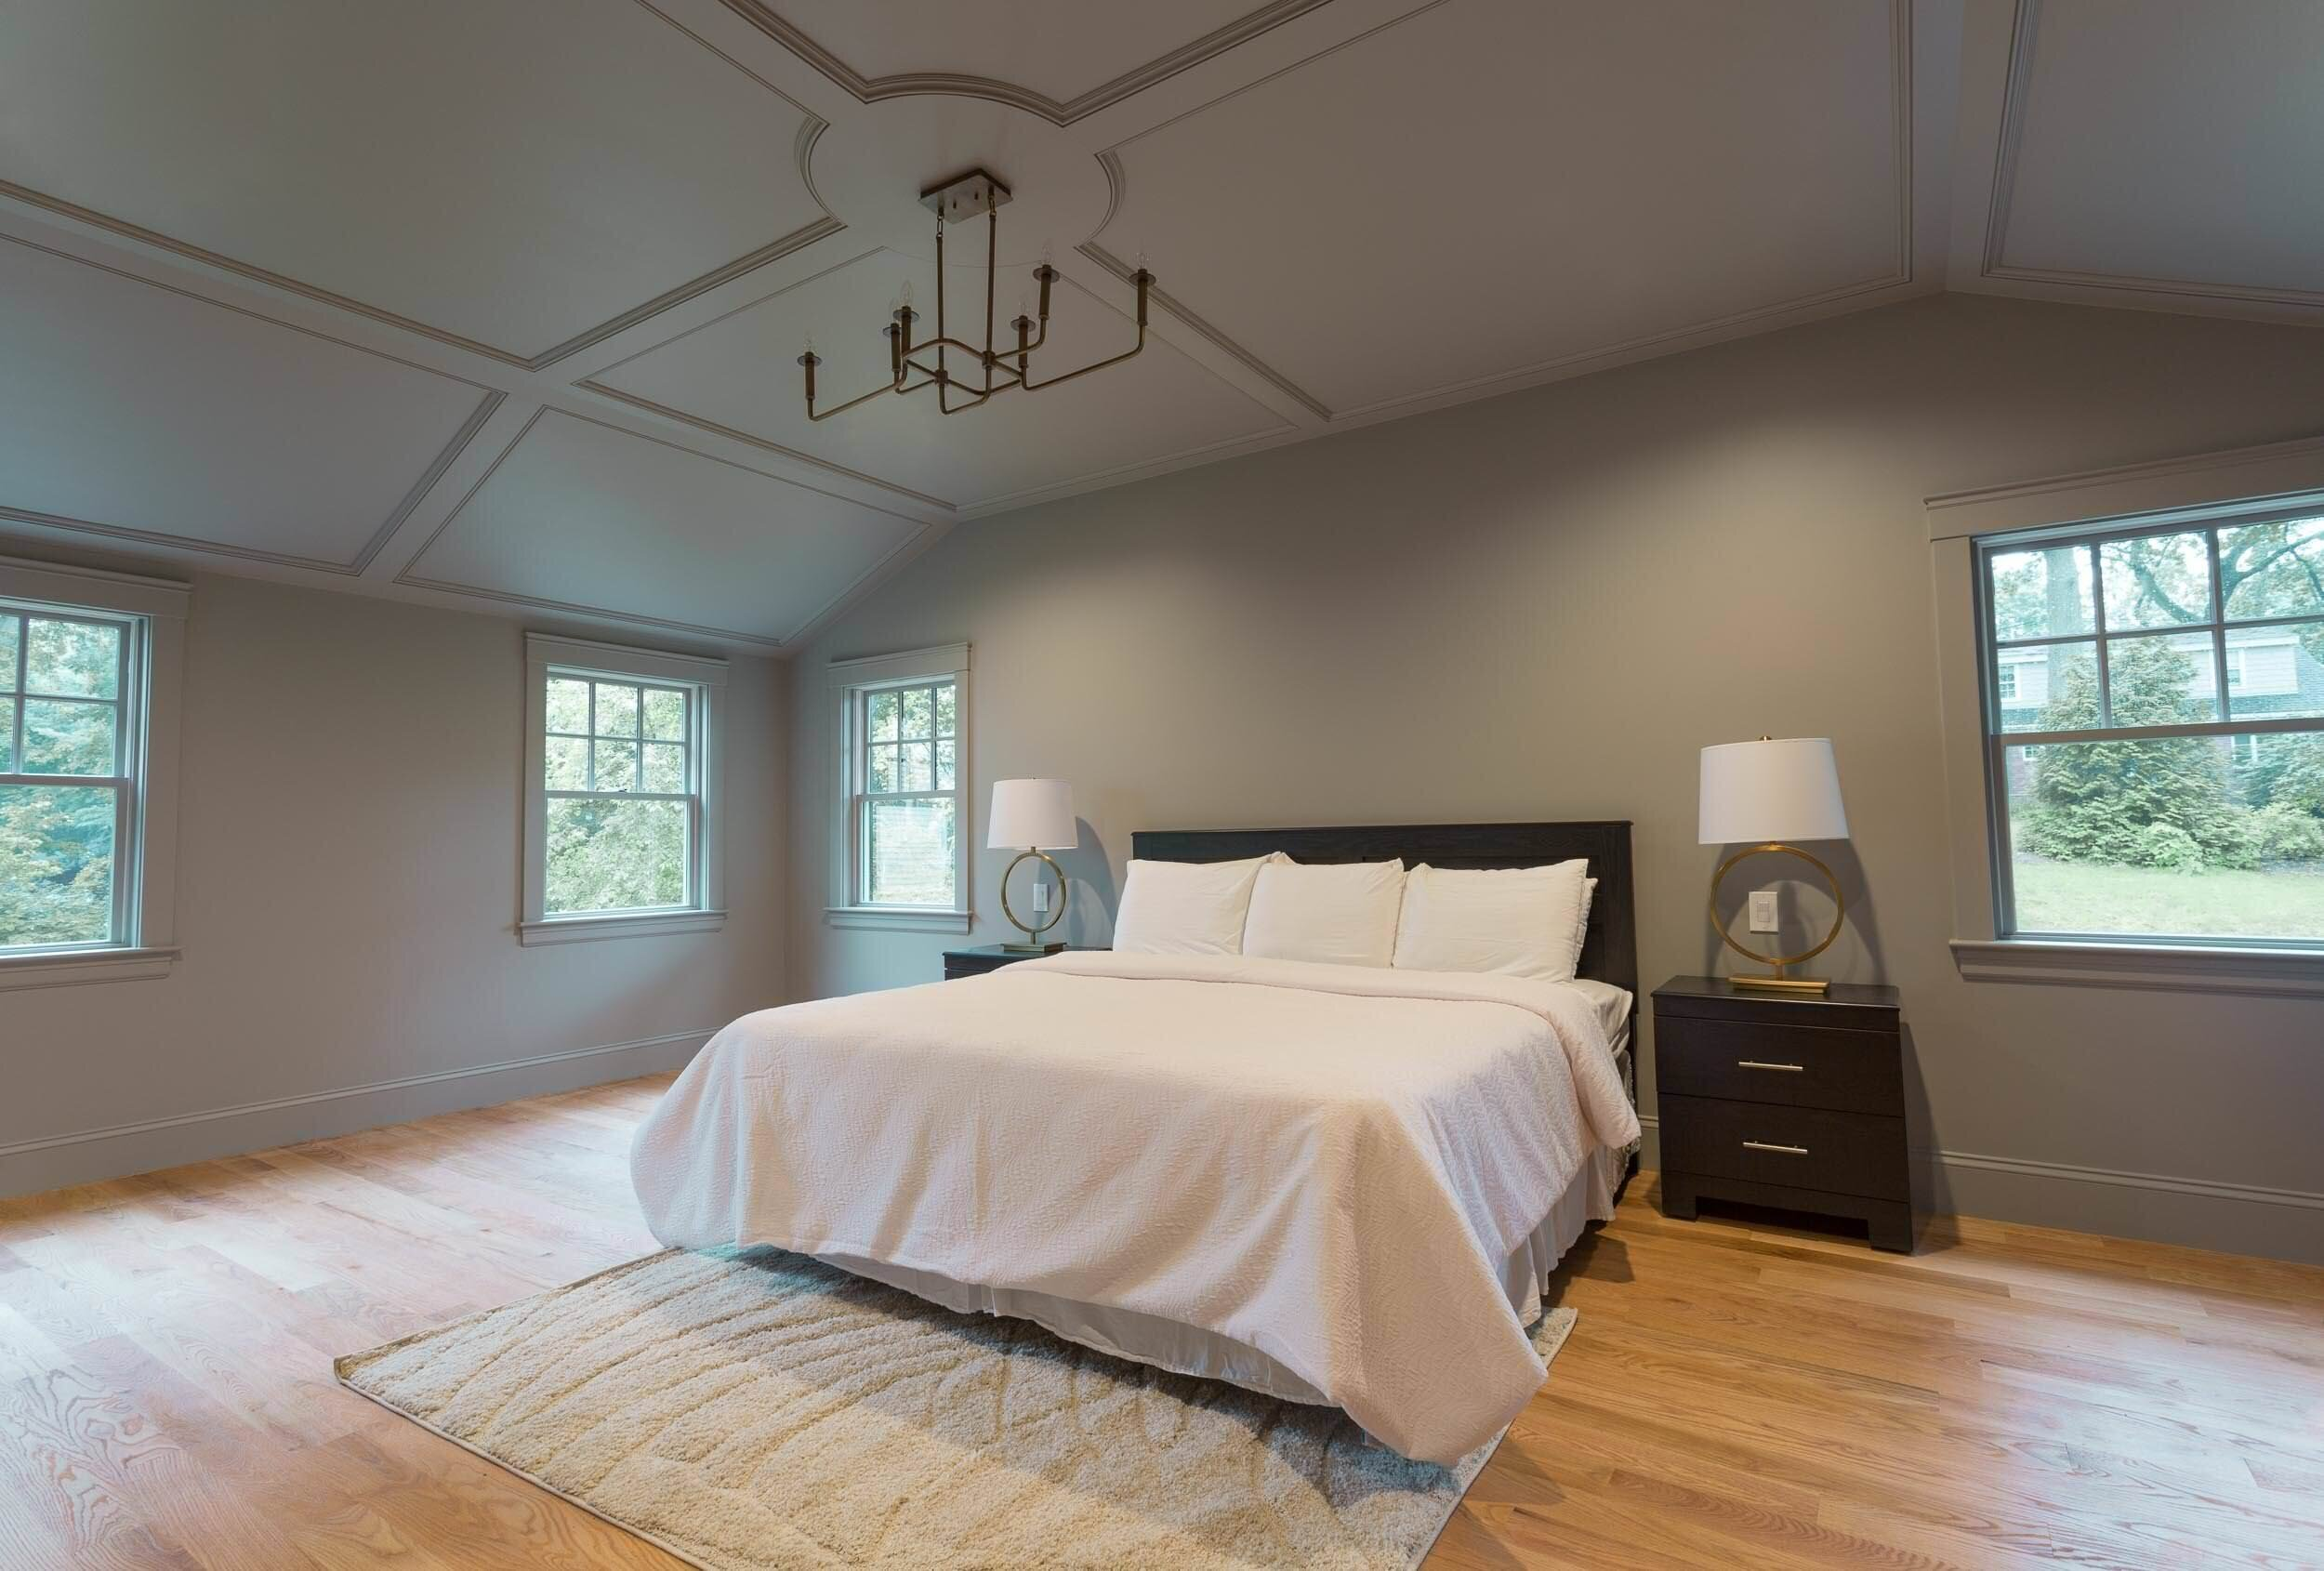 5 Ways To Paint Your Ceiling In 2020 Big Dog Painting